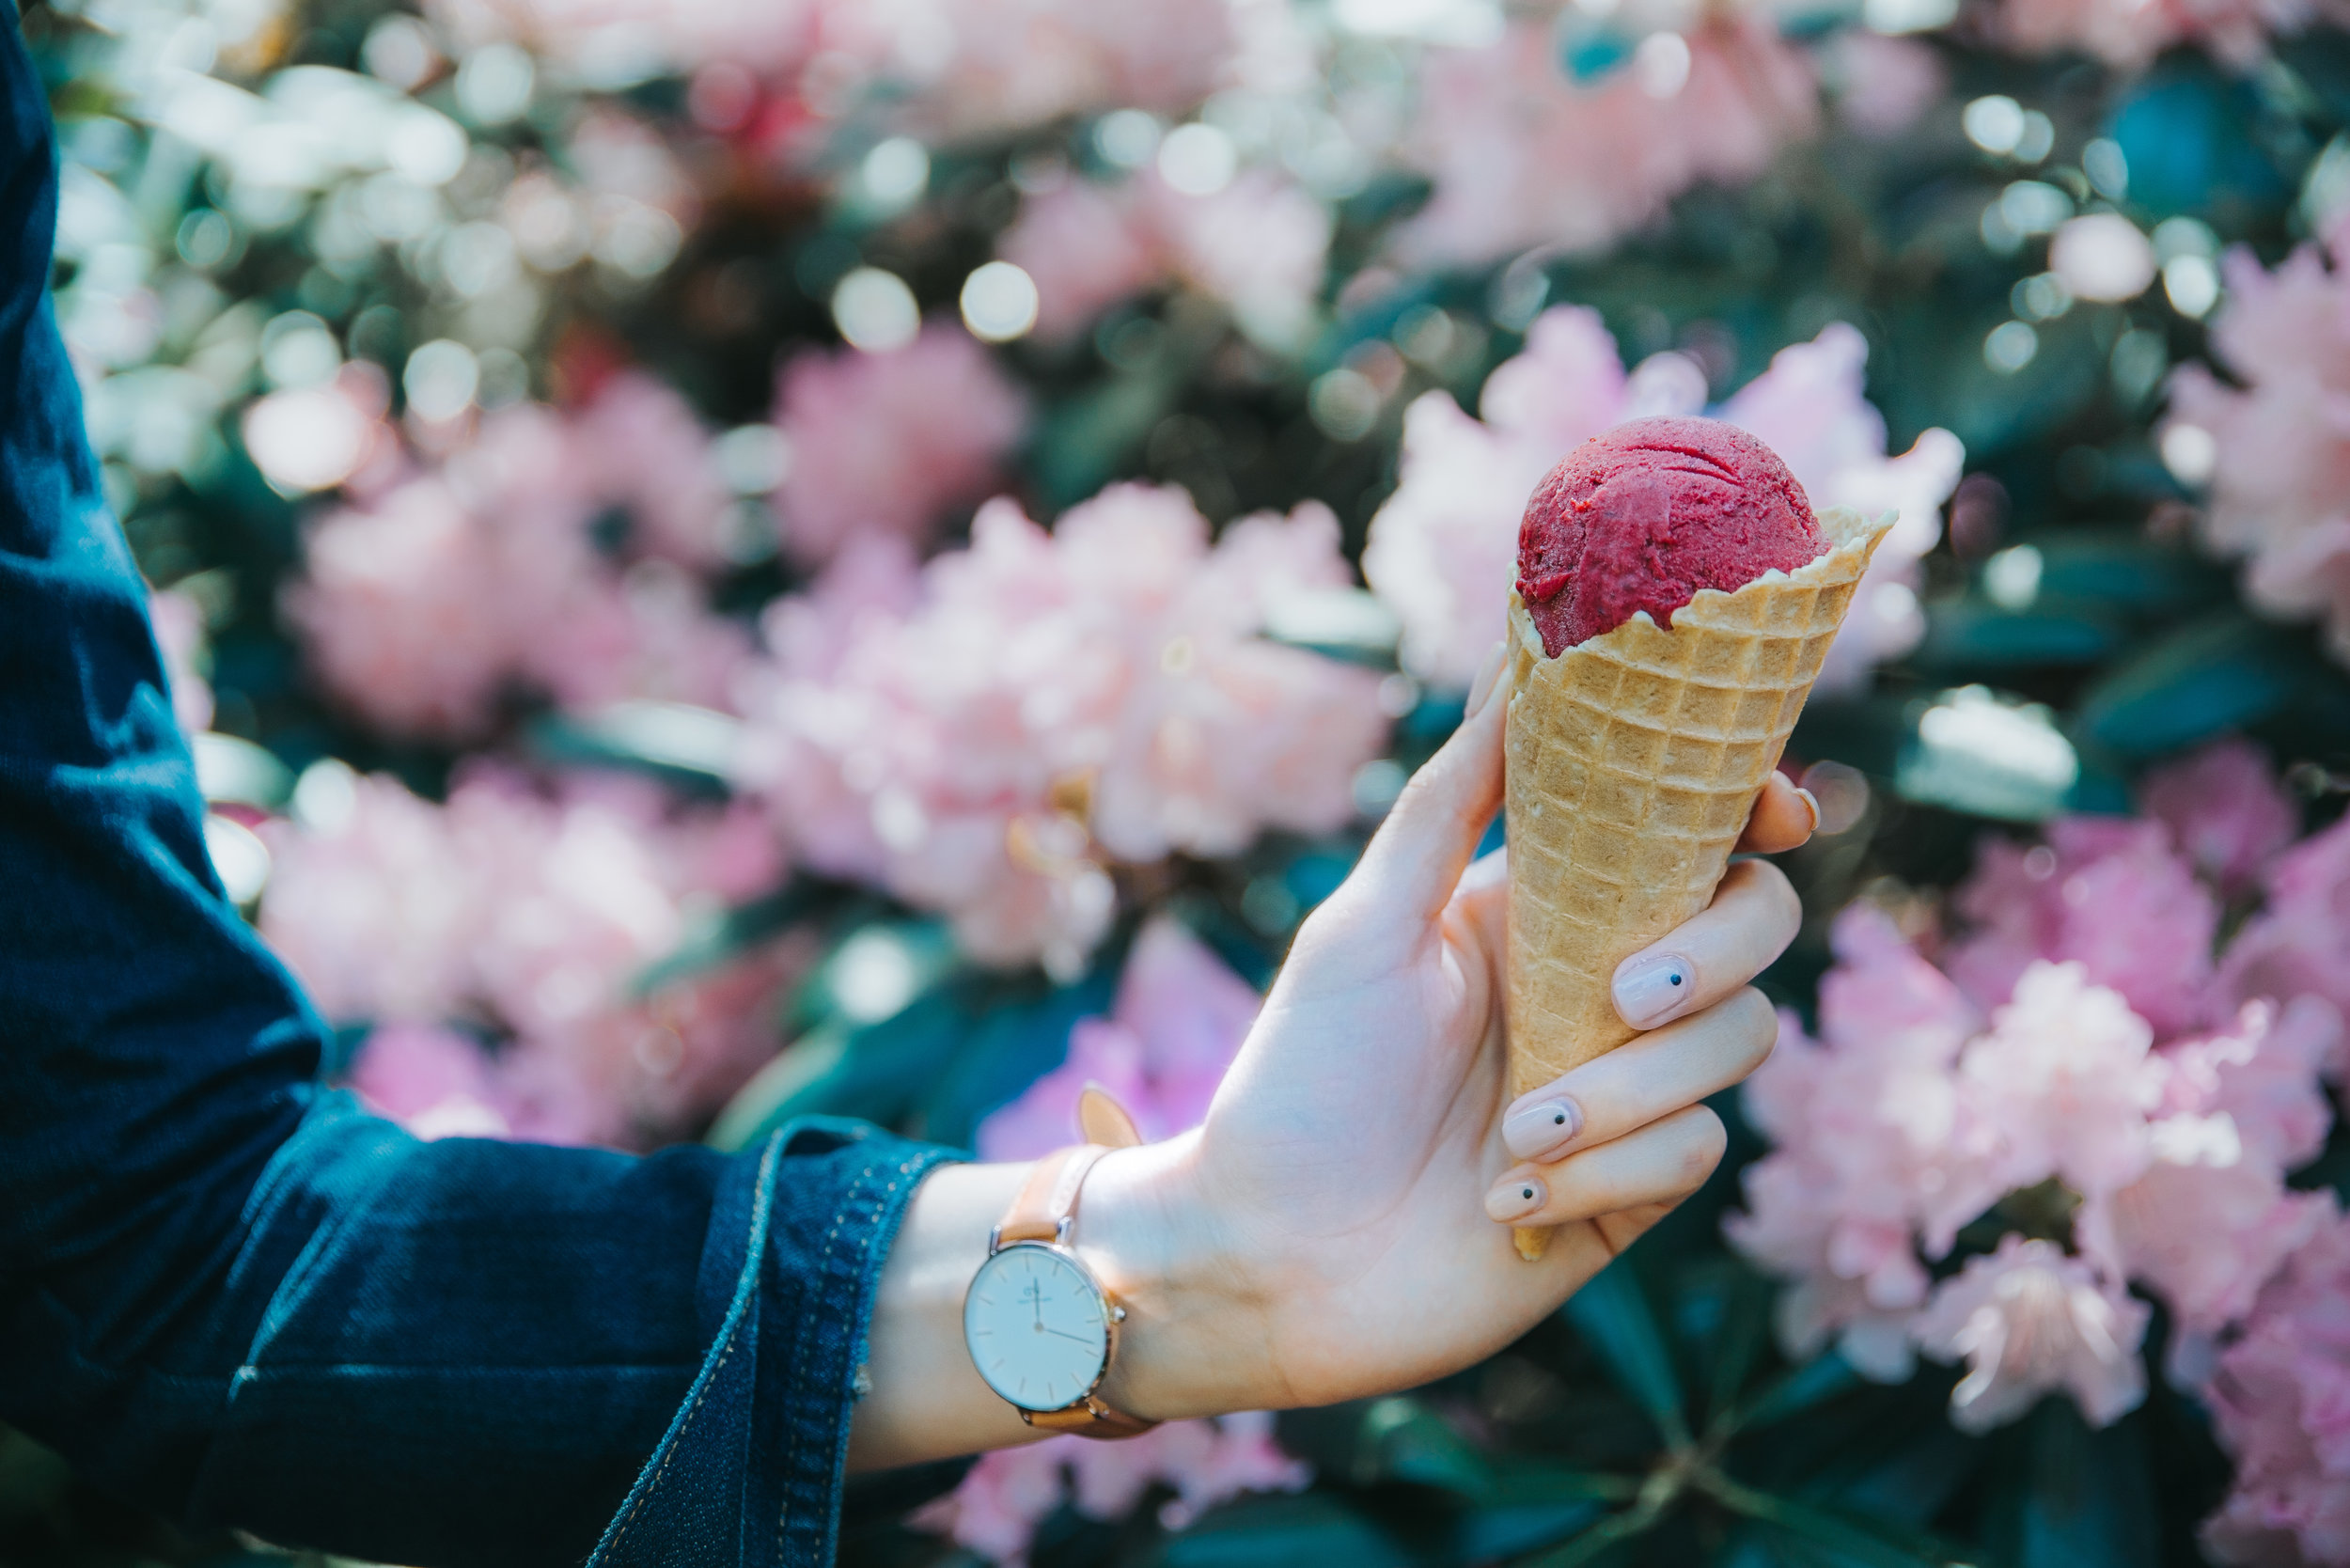 Image of a person holding an icecream.